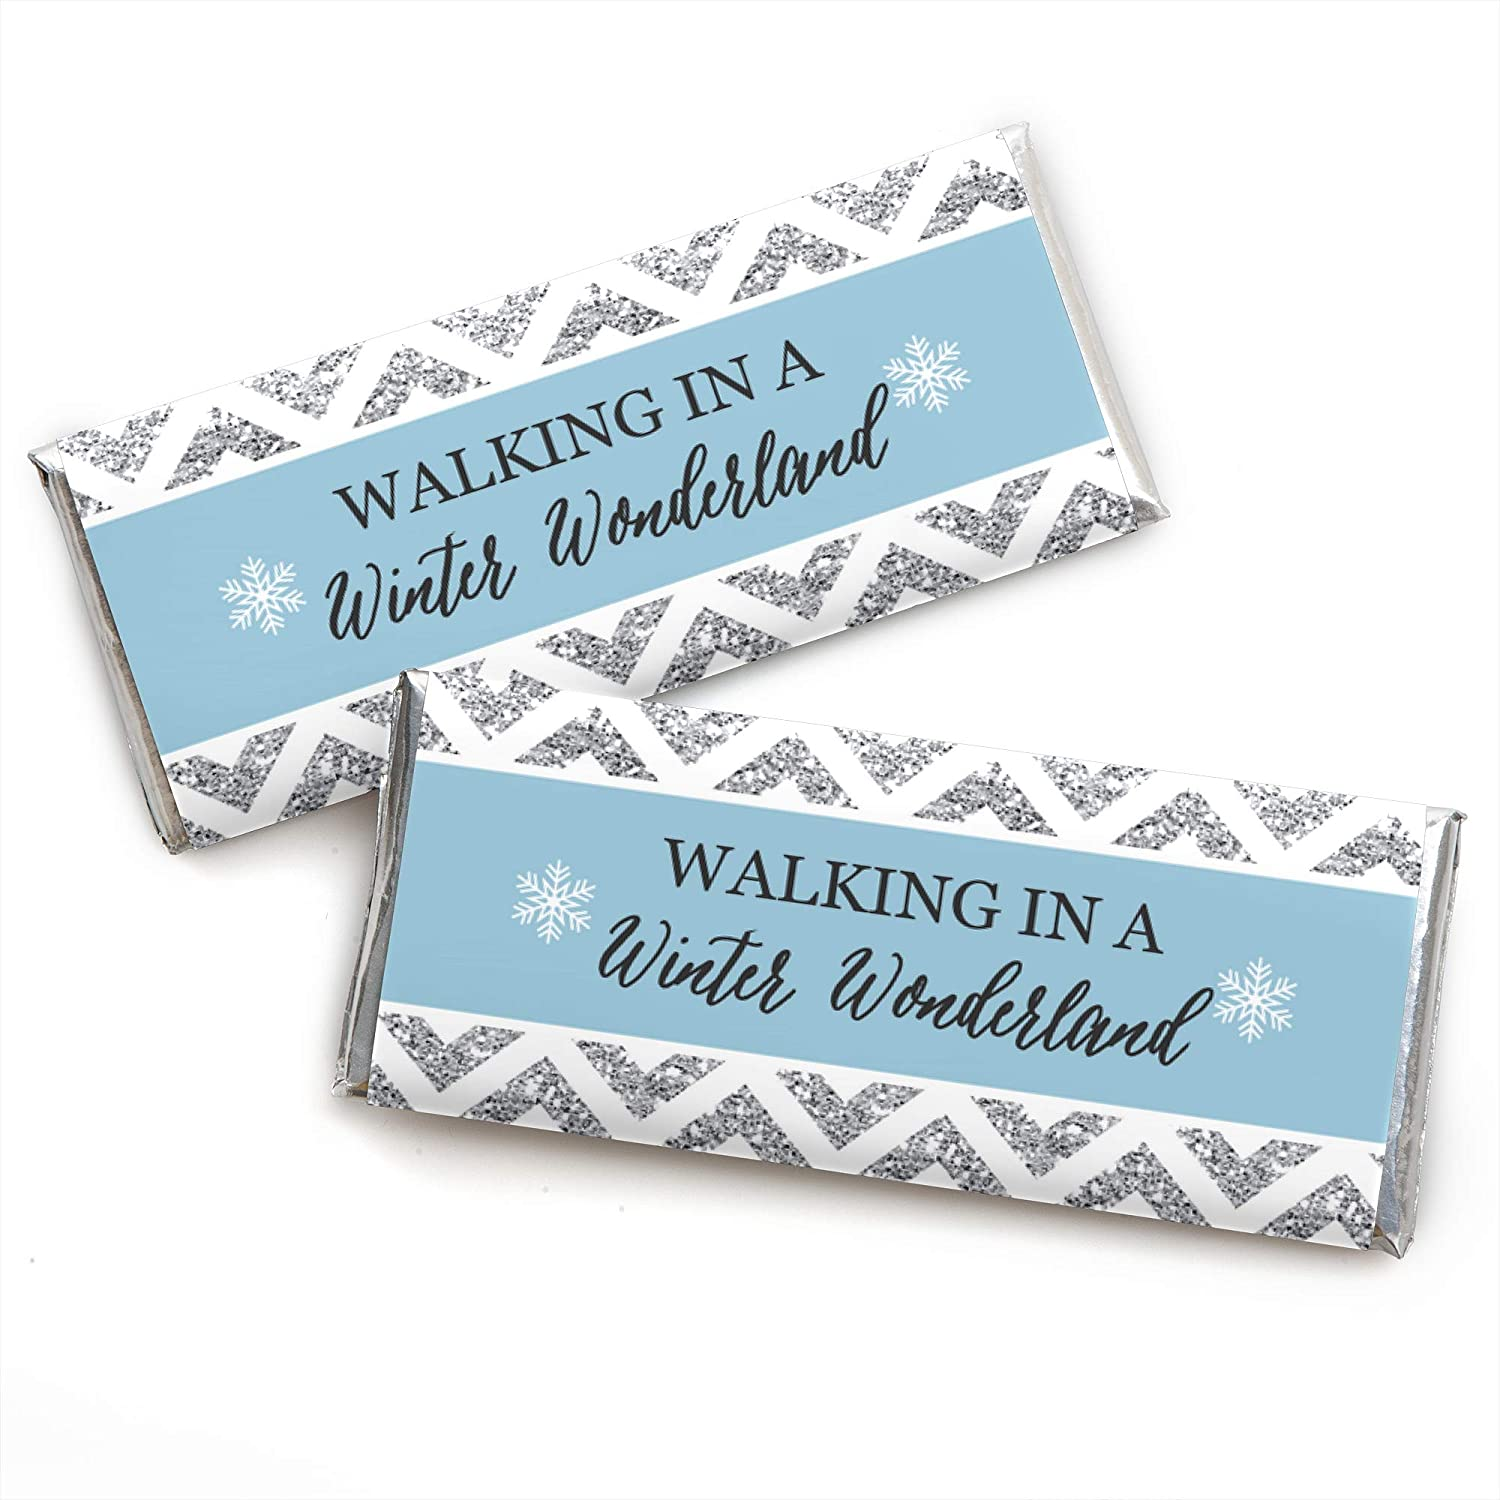 Poinsettia Winter Favors Candy Bar Wrappers Winter Wedding Favors Set of 12 Party Favors Wedding Bridal Shower Personalized Favors